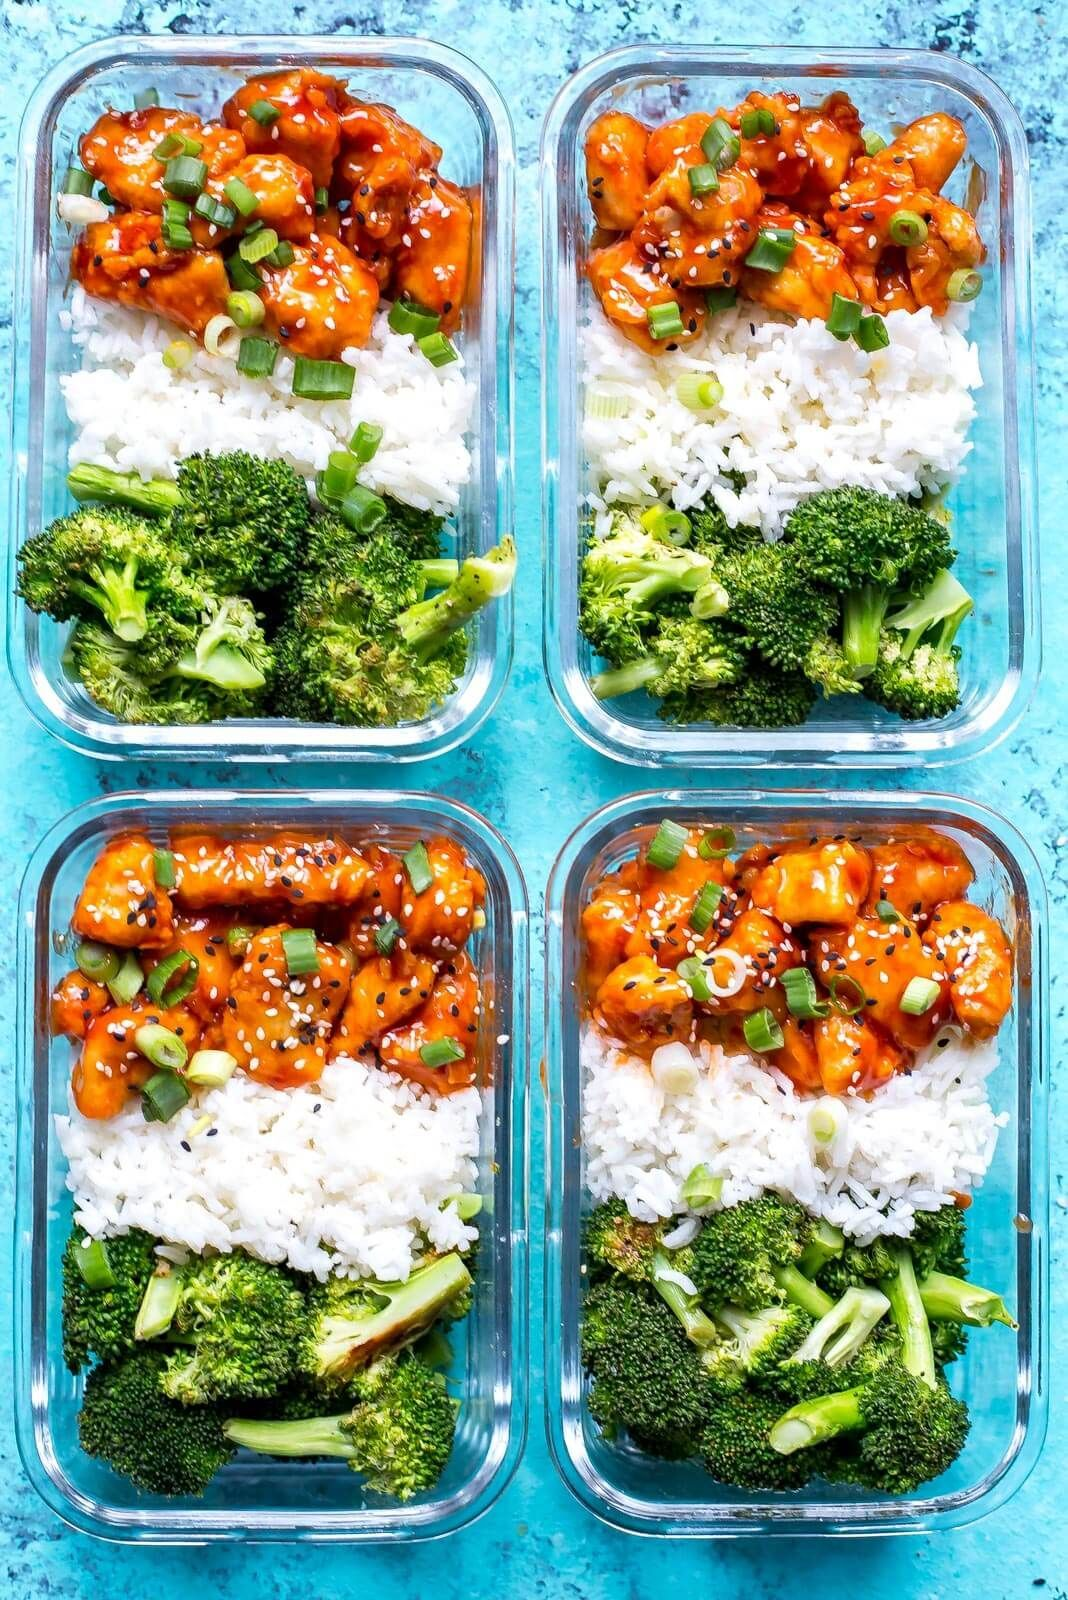 Sriracha Chicken Meal Prep Bowls with broccoli and jasmine rice. MADE IT.